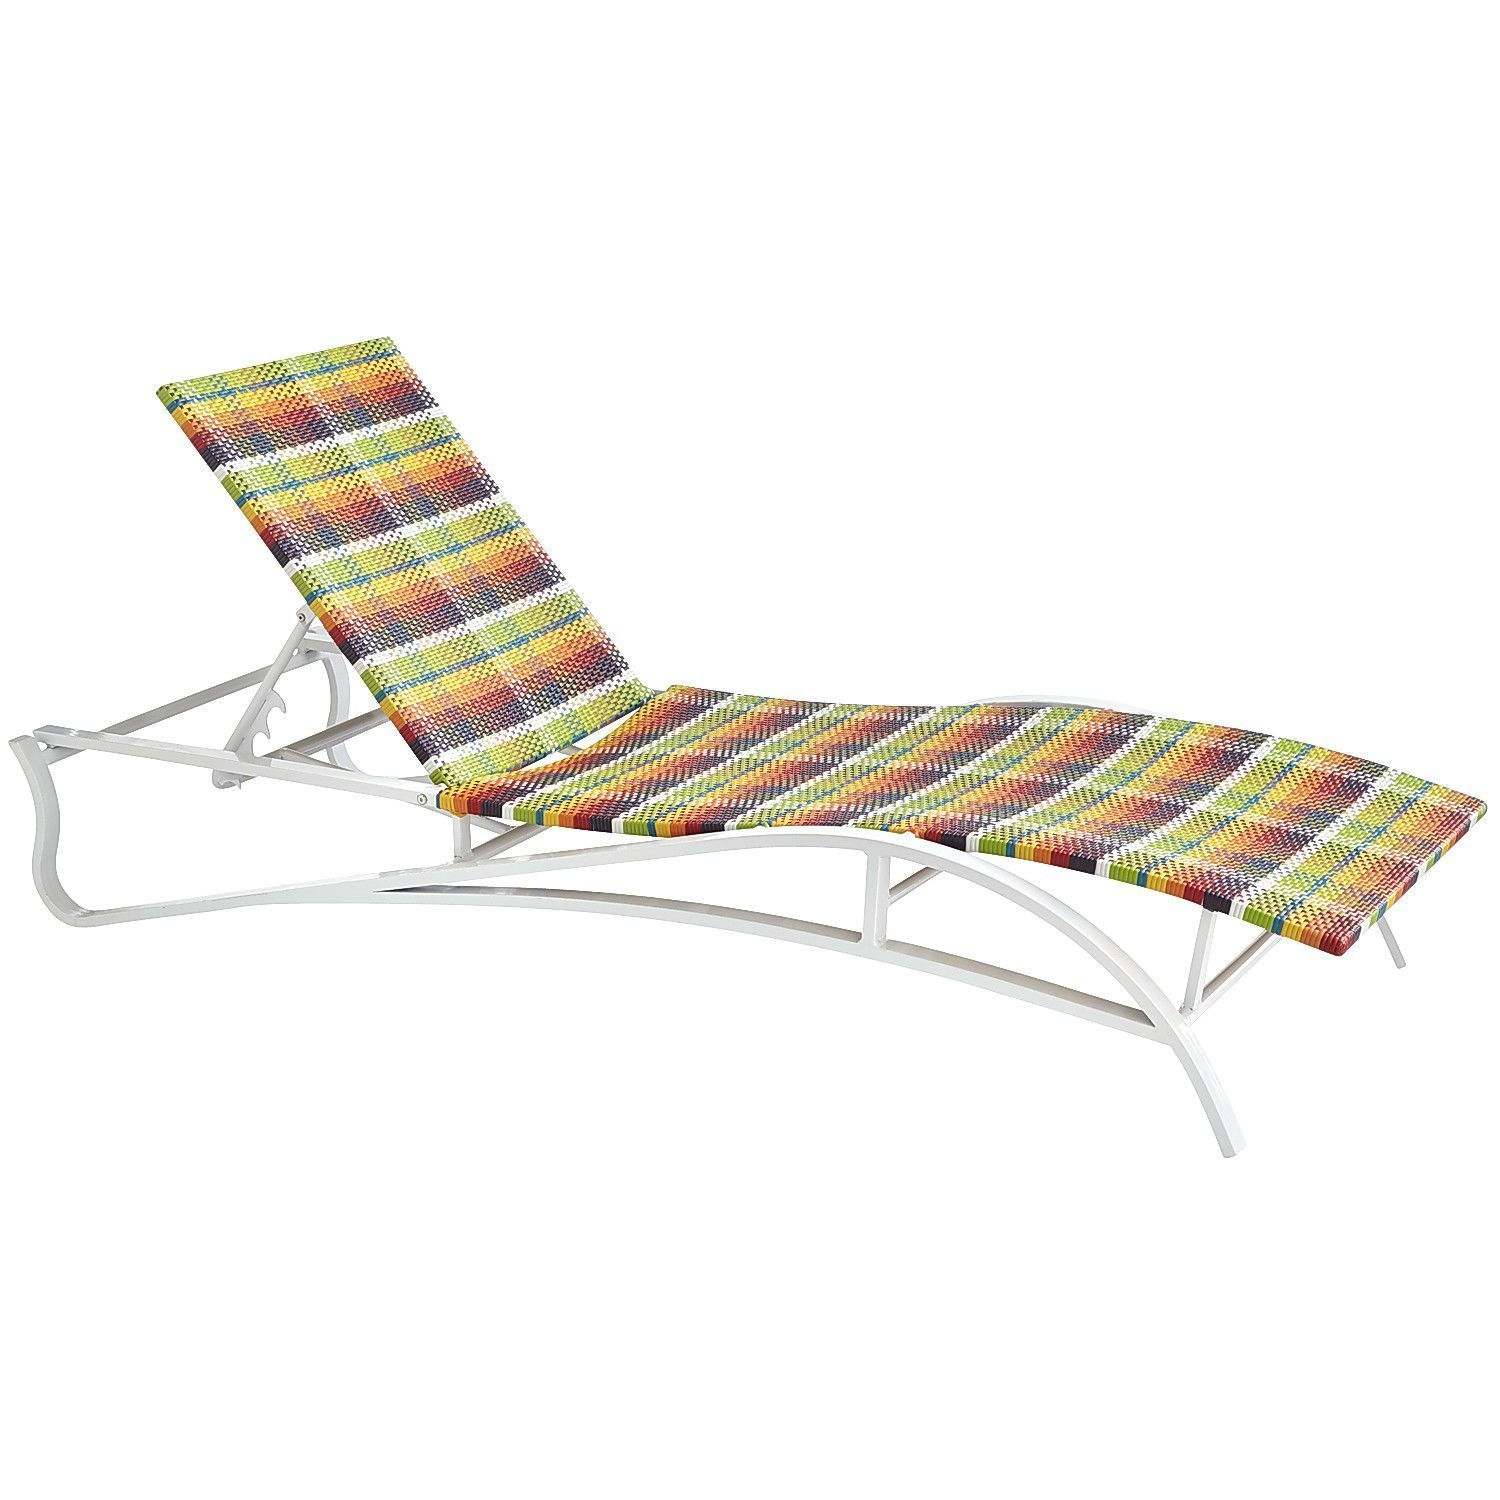 Plaid Chaise Imports Contemporary Outdoor Living LoungePier 1 shrdBoQCtx